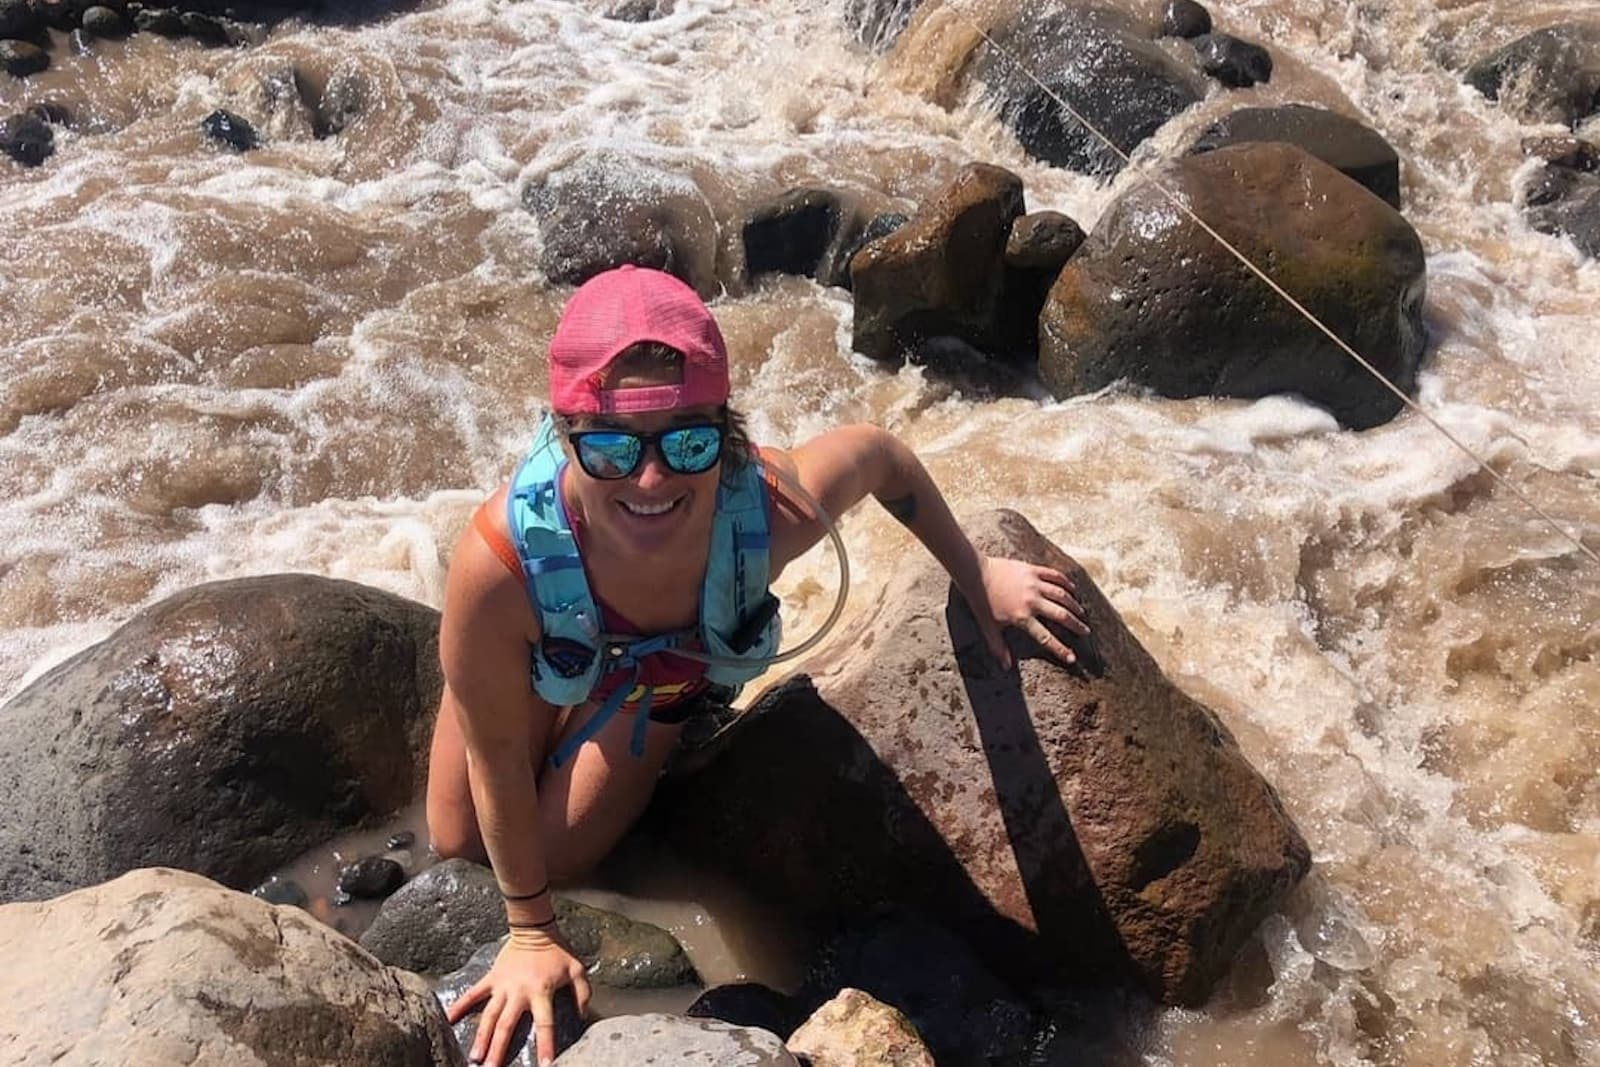 Emily Halnon hiking with goodr running sunglasses